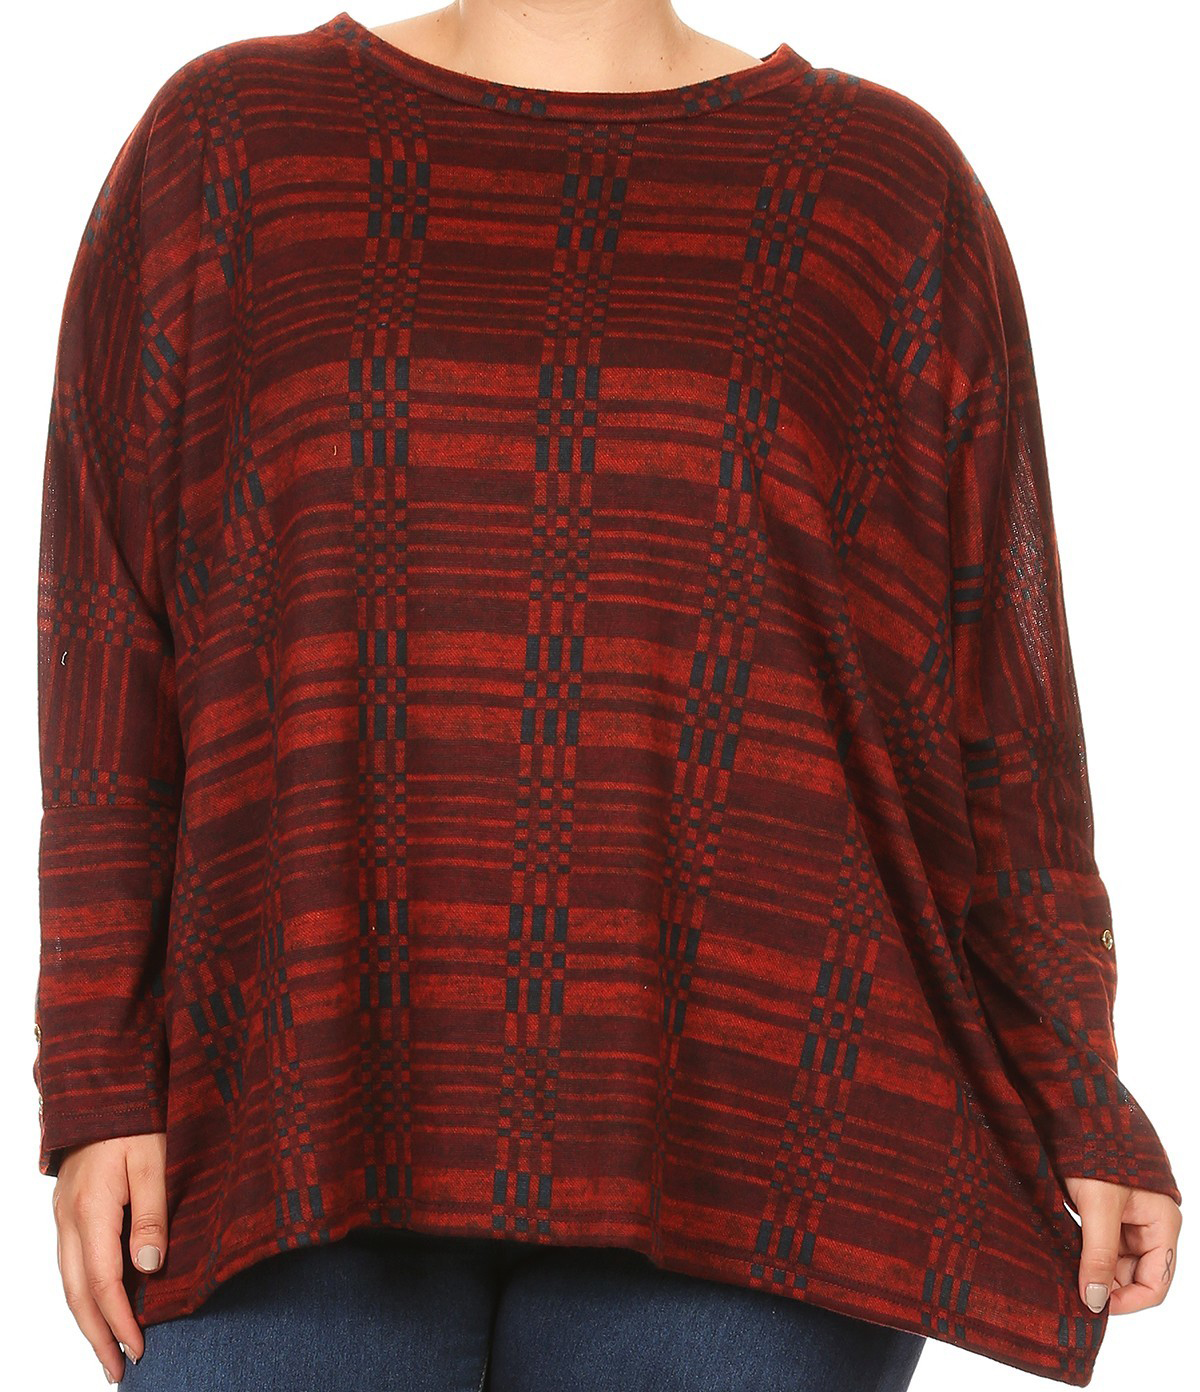 BNY Women Plus Size Long Sleeve Relaxed Striped Pattern Knit Top Tee Blouse Burgundy XL B527 PRT